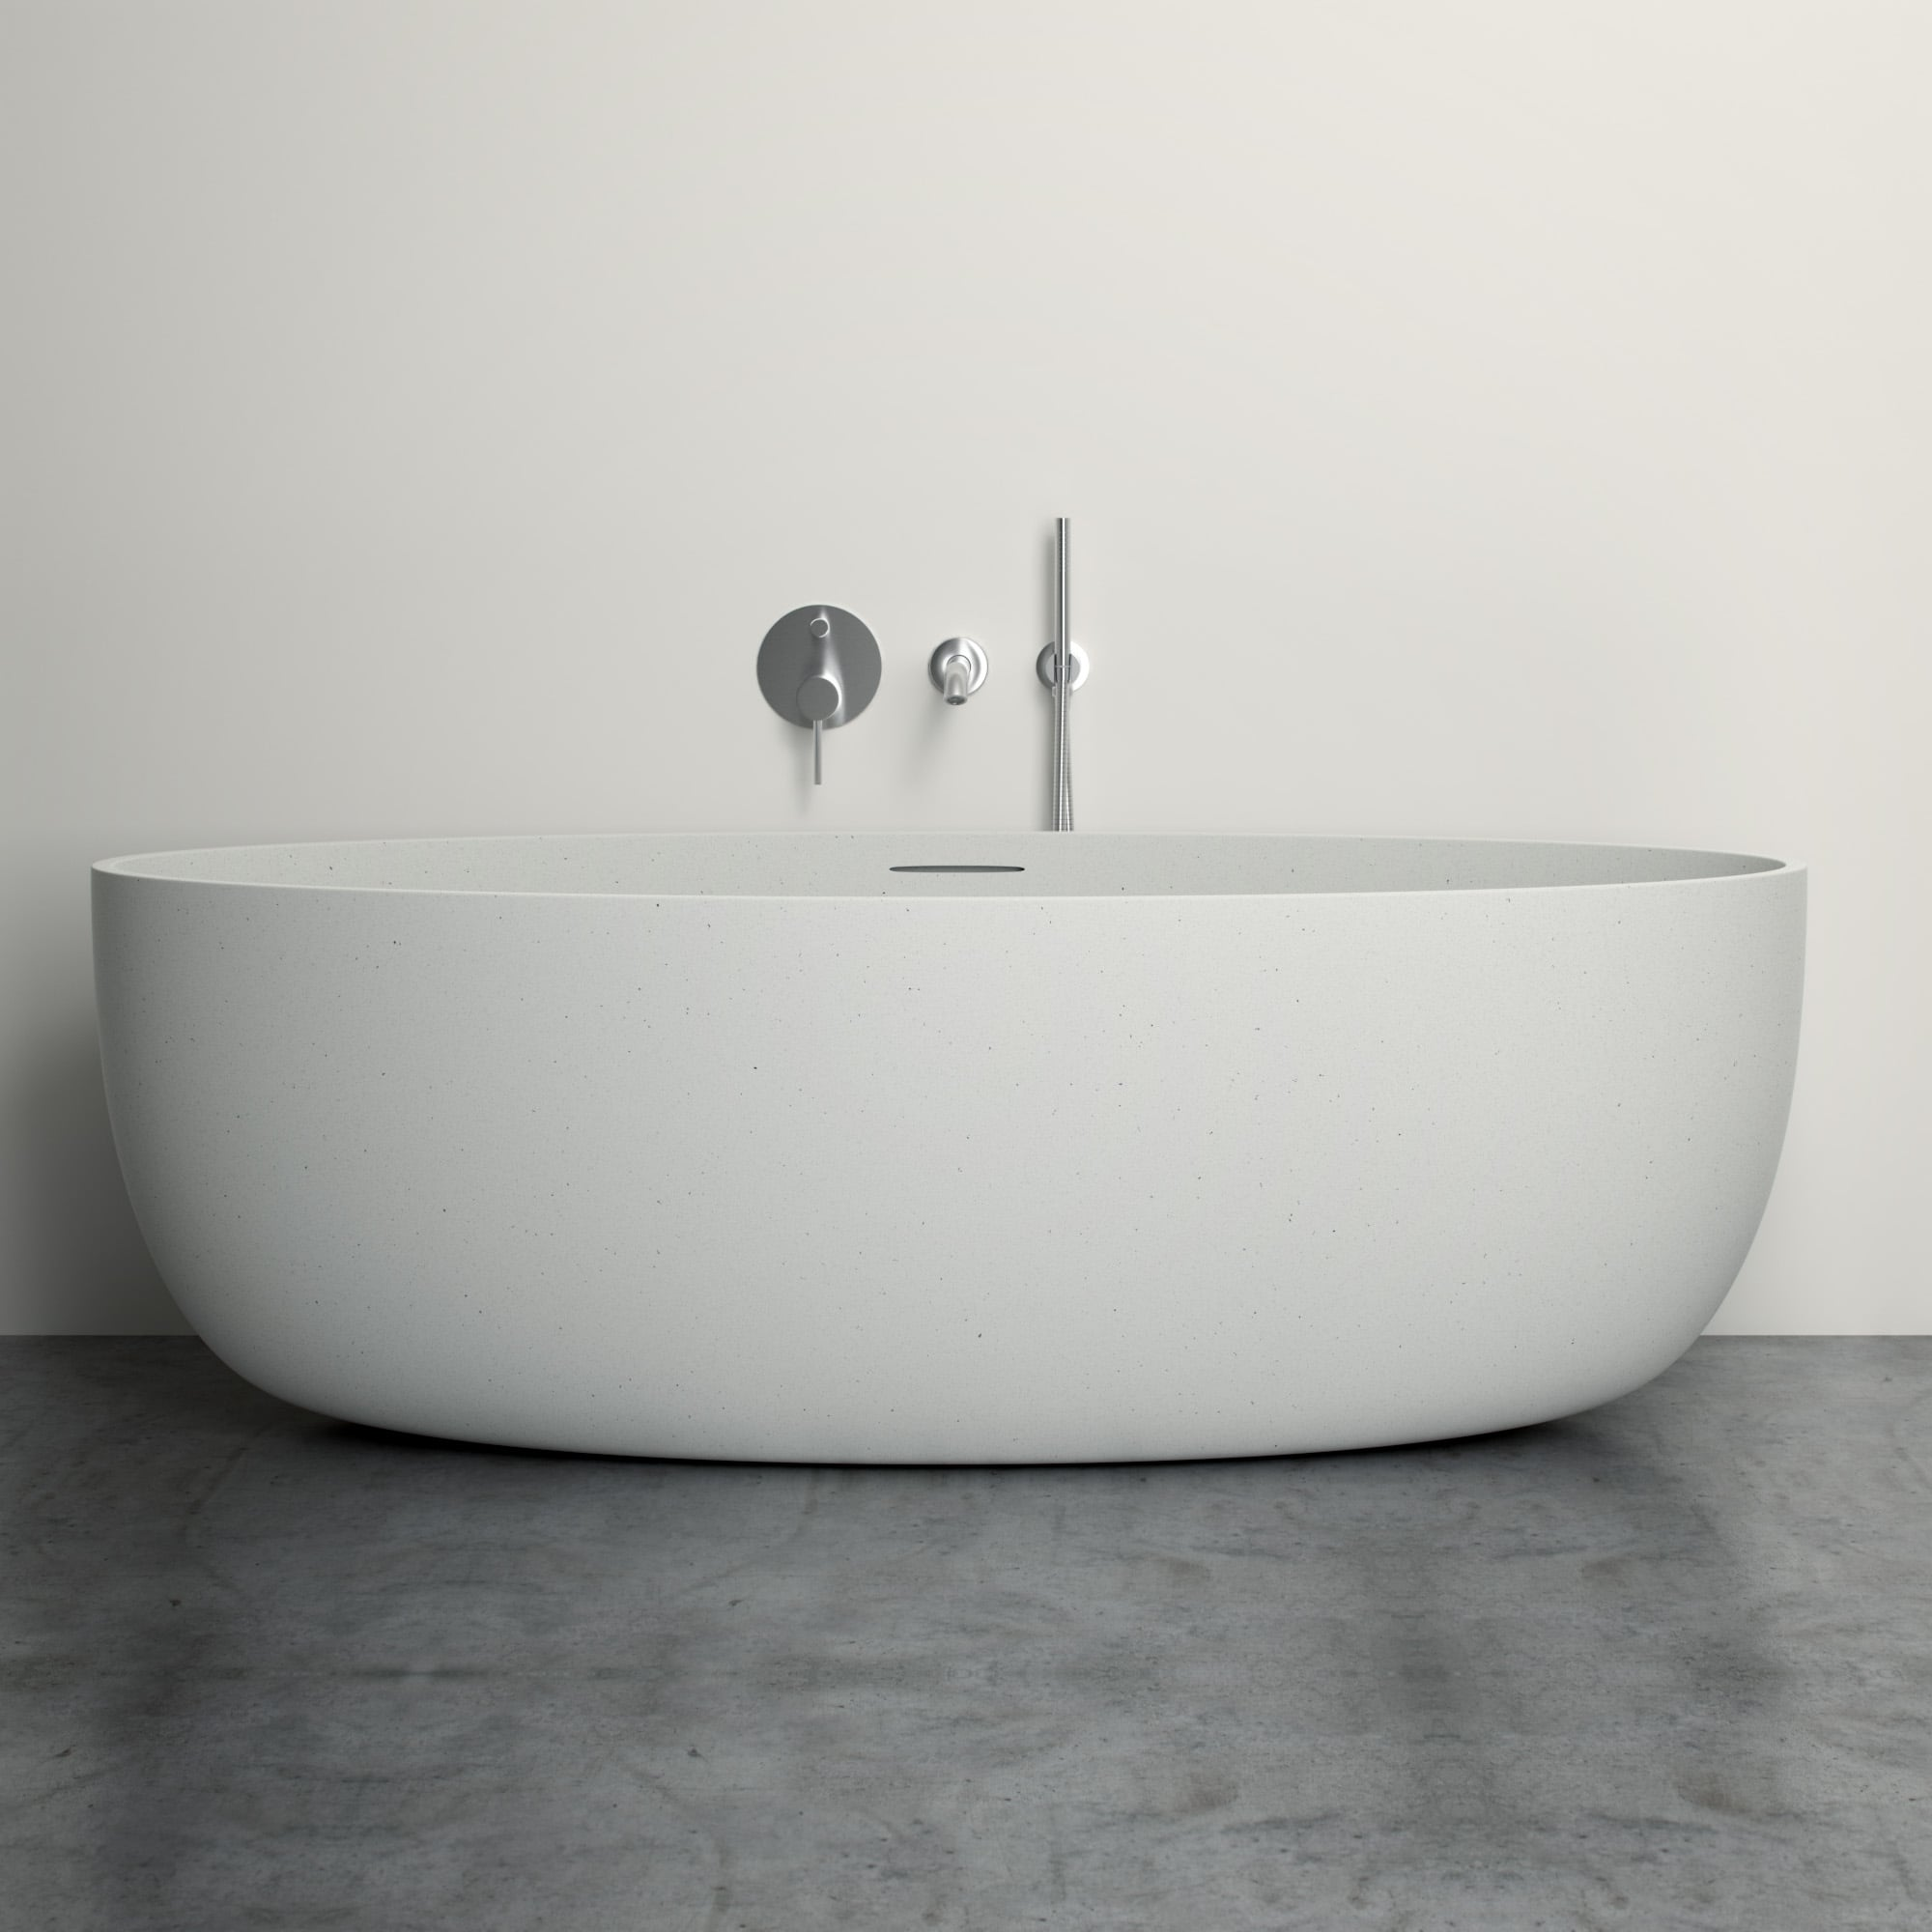 Stone Baths, Luxurious Freestanding Baths by Lusso Stone